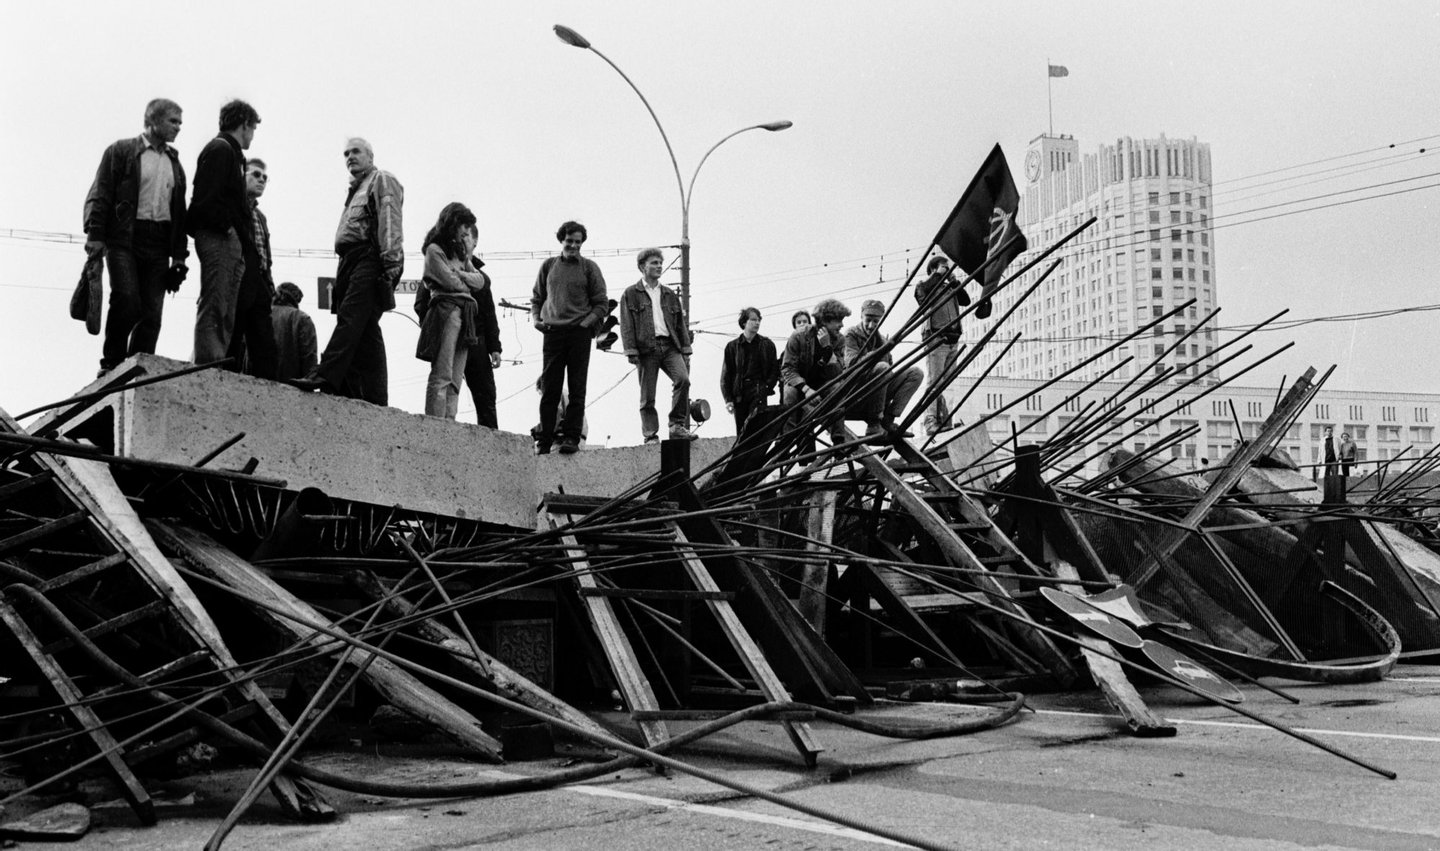 People stand on a barricade in front the Russian White House in Moscow on August 21, 1991. Russia marks on August 19-22, 2011, the 20th anniversary of the abortive 1991 coup against then Soviet president Mikhail Gorbachev. Tanks rolled through Moscow towards the Russian White House, where Boris Yeltsin, leader of the Soviet-era Russian republic at the time, gathered his supporters after denouncing the coup from the roof of a tank, which resulted later in the collapse of the Soviet empire.   AFP PHOTO/ ALEXANDER NEMENOV        (Photo credit should read ALEXANDER NEMENOV/AFP/Getty Images)